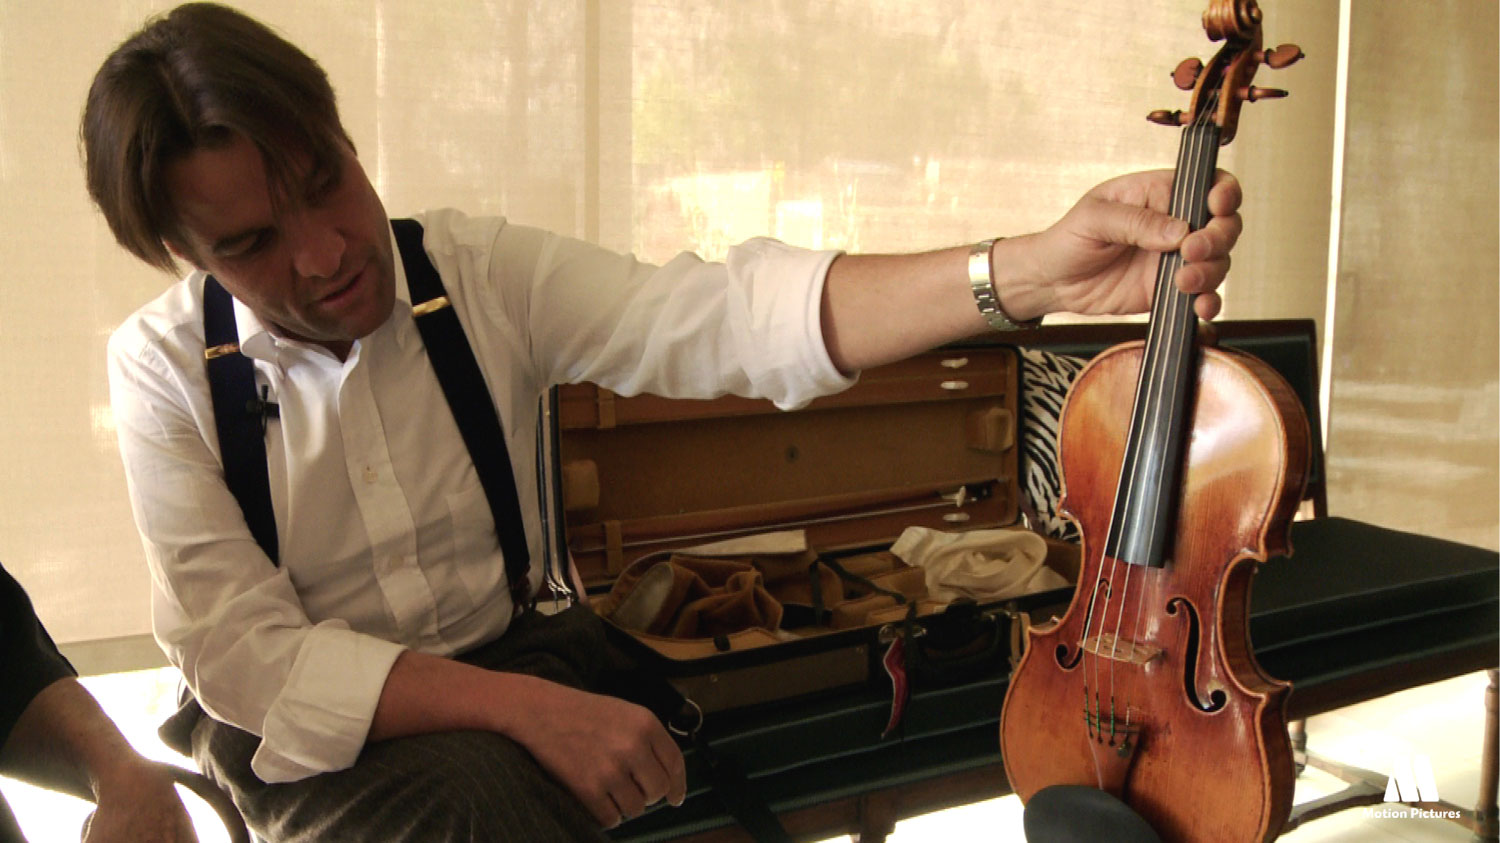 Documentary the Stradivarius complex, docuemntal el complejo Stradivarius